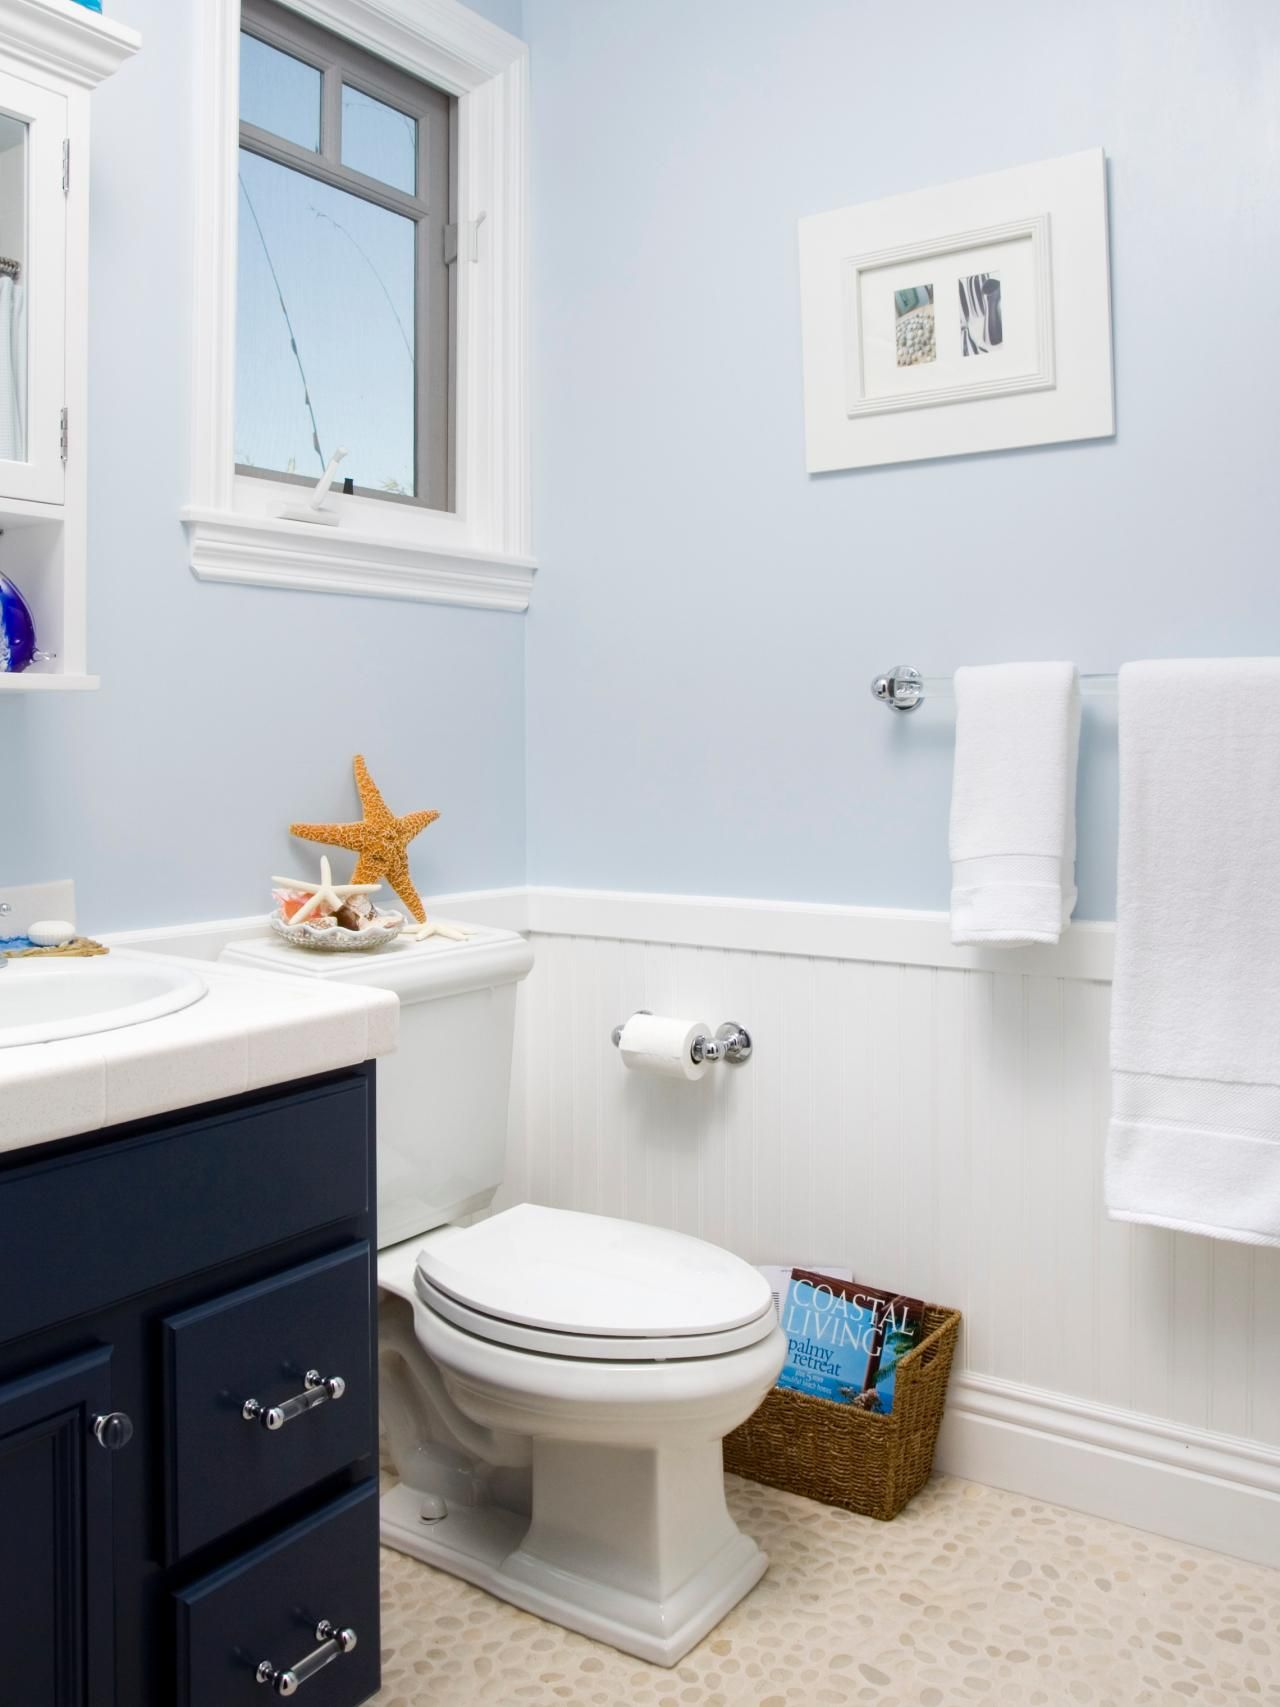 Coastal Bathroom Ideas | DIY home decor | Pinterest | Coastal ... on coastal bathroom makeover, coastal bathroom light, coastal bathroom shelf, coastal food ideas, tongue and groove pine boards design ideas, coastal living bathroom, coastal sinks, coastal bathroom accessories, coastal interior ideas, coastal beach bathroom decor, coastal themed bathroom, coastal house ideas, coastal bathroom paint colors, coastal bathroom storage, coastal bathroom vanities, coastal livingroom ideas, coastal mirrors ideas, coastal bathroom shelves, coastal bathroom floor, coastal bedroom ideas,